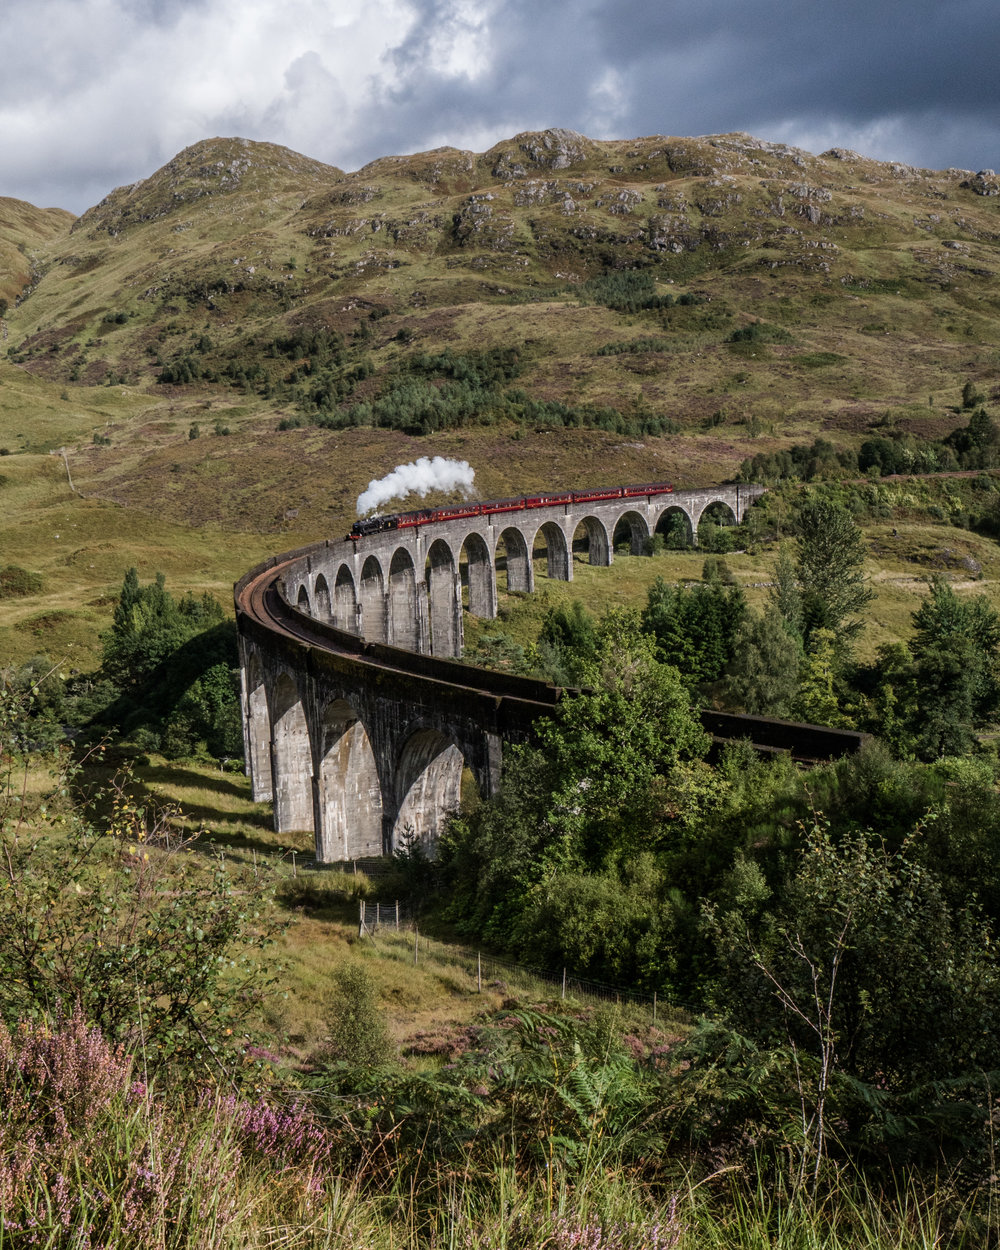 Aberdeen 4x4 - Isle of Skye - Glenfinnan Viaduct Photographer